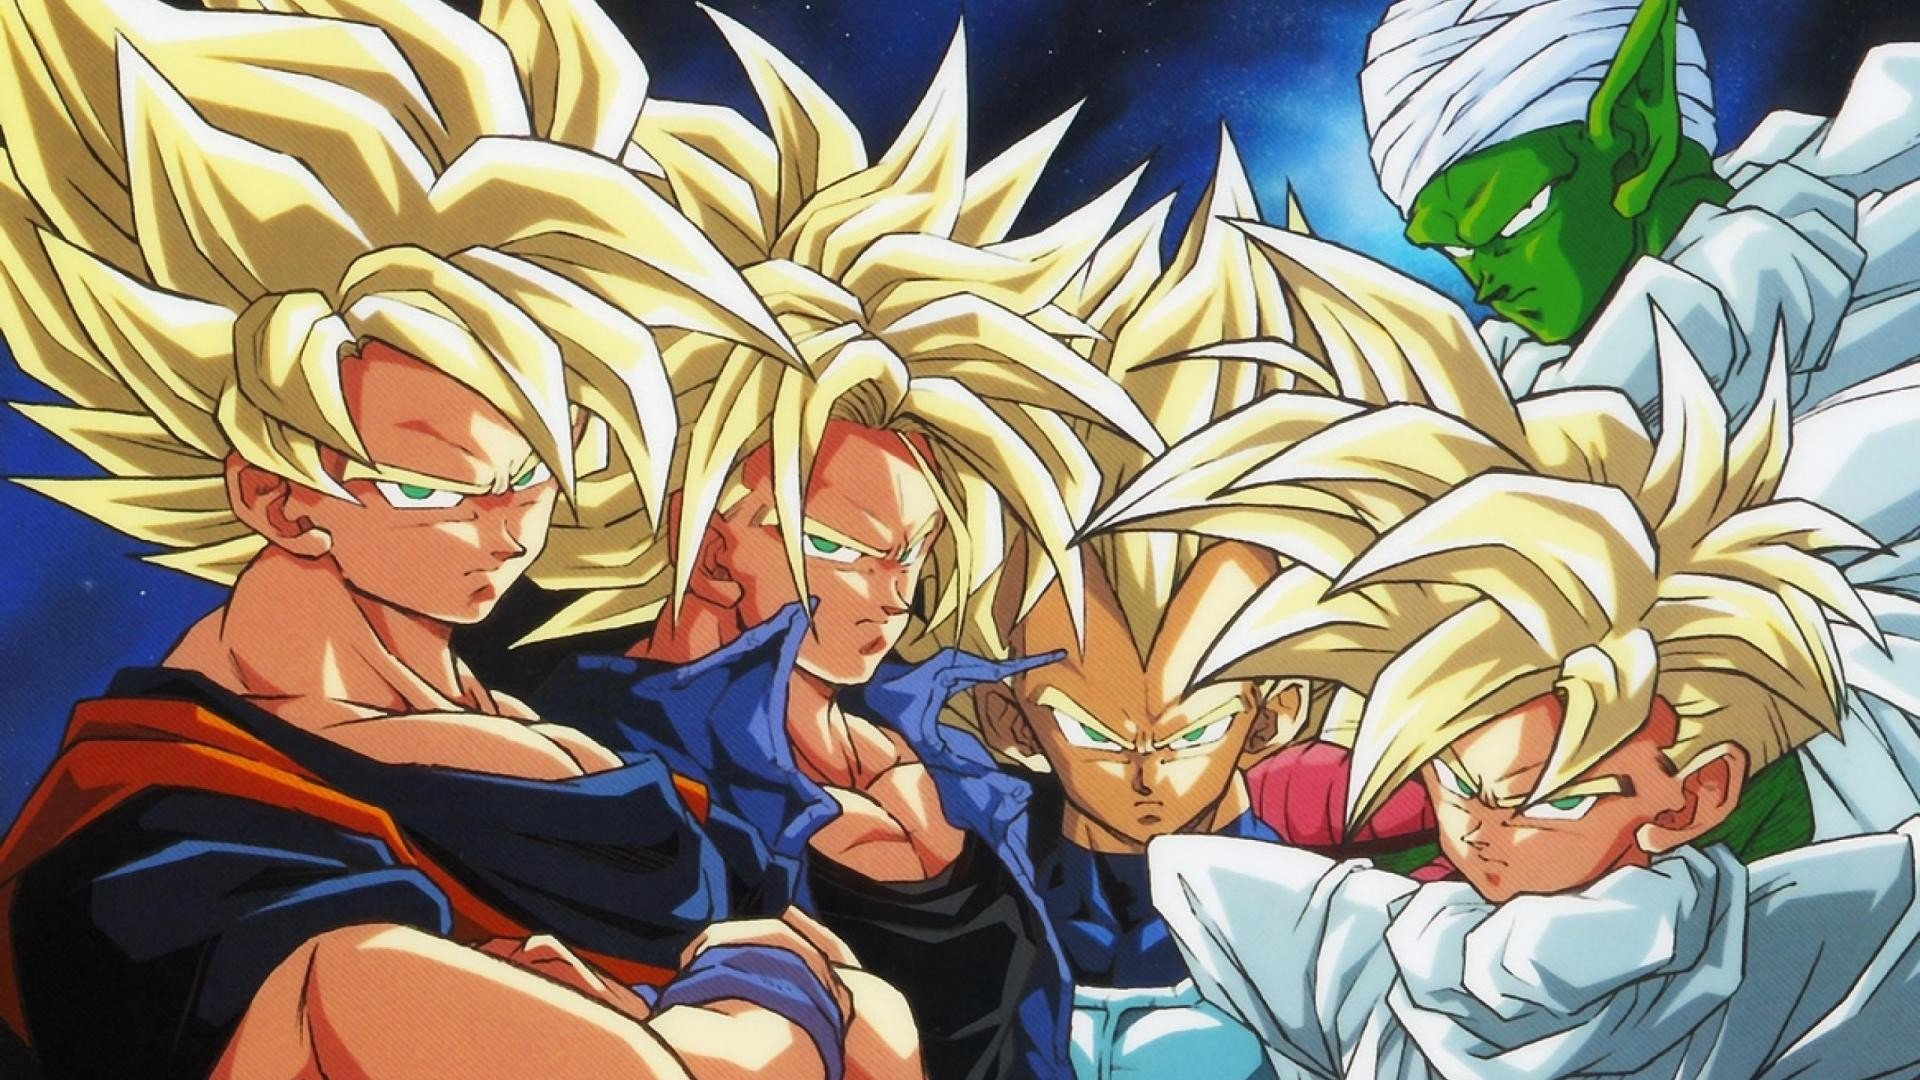 Dragon Ball Z Trunks Wallpaper 66 images 1920x1080